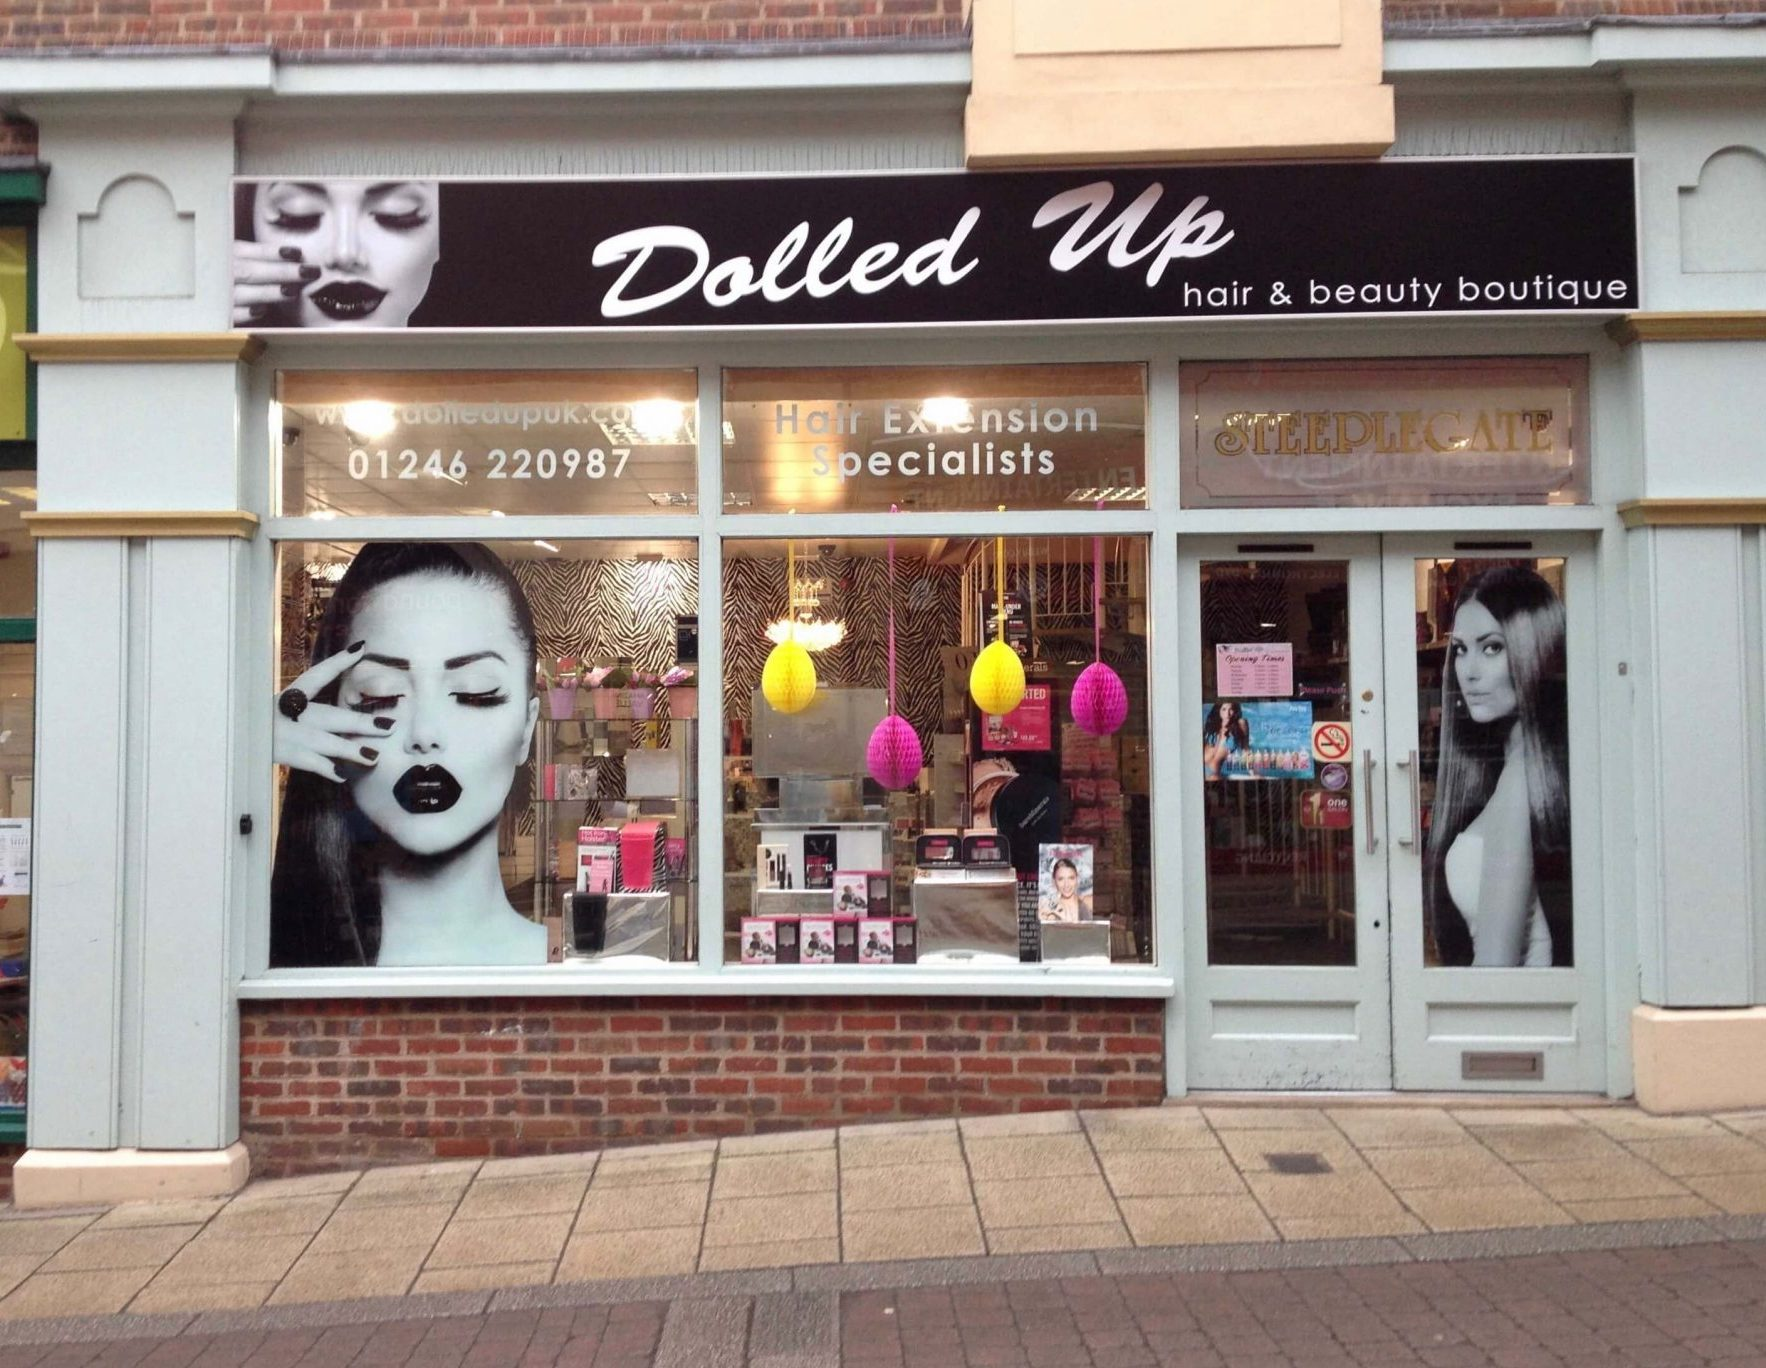 Dolled Up Hair & Beauty Boutique